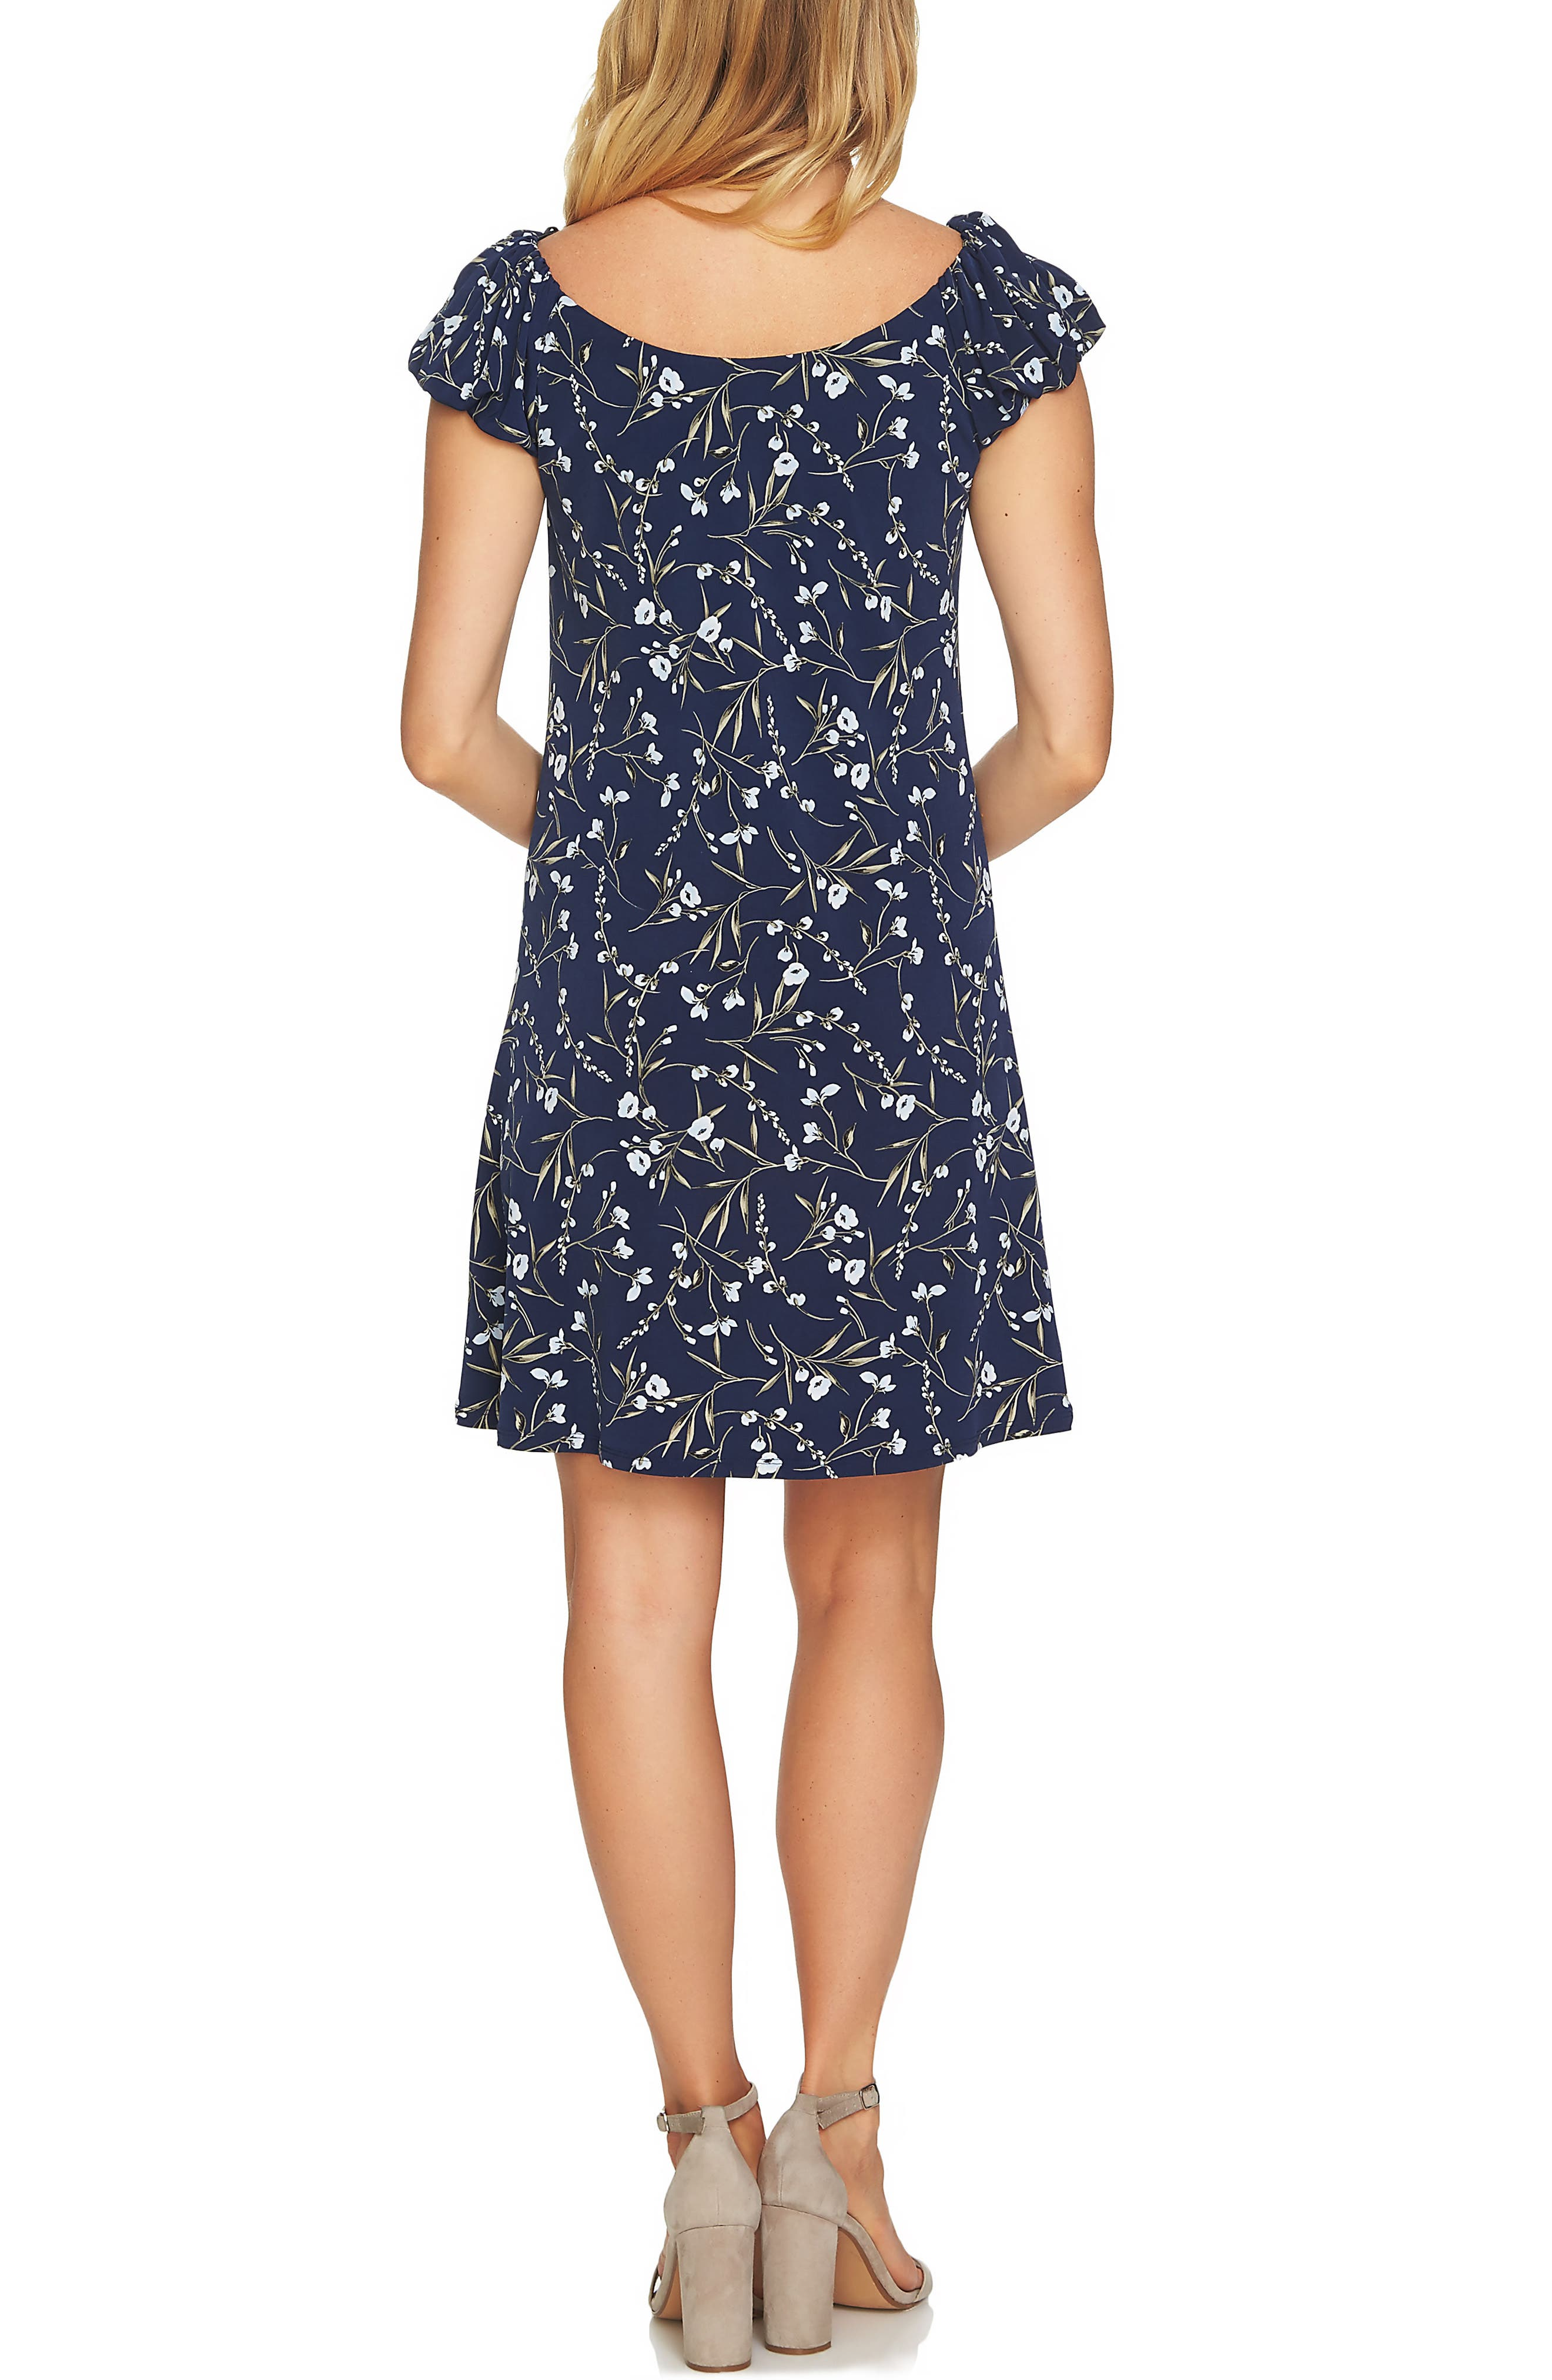 Graceful Flora Puff Sleeve Dress,                             Alternate thumbnail 2, color,                             Naval Navy